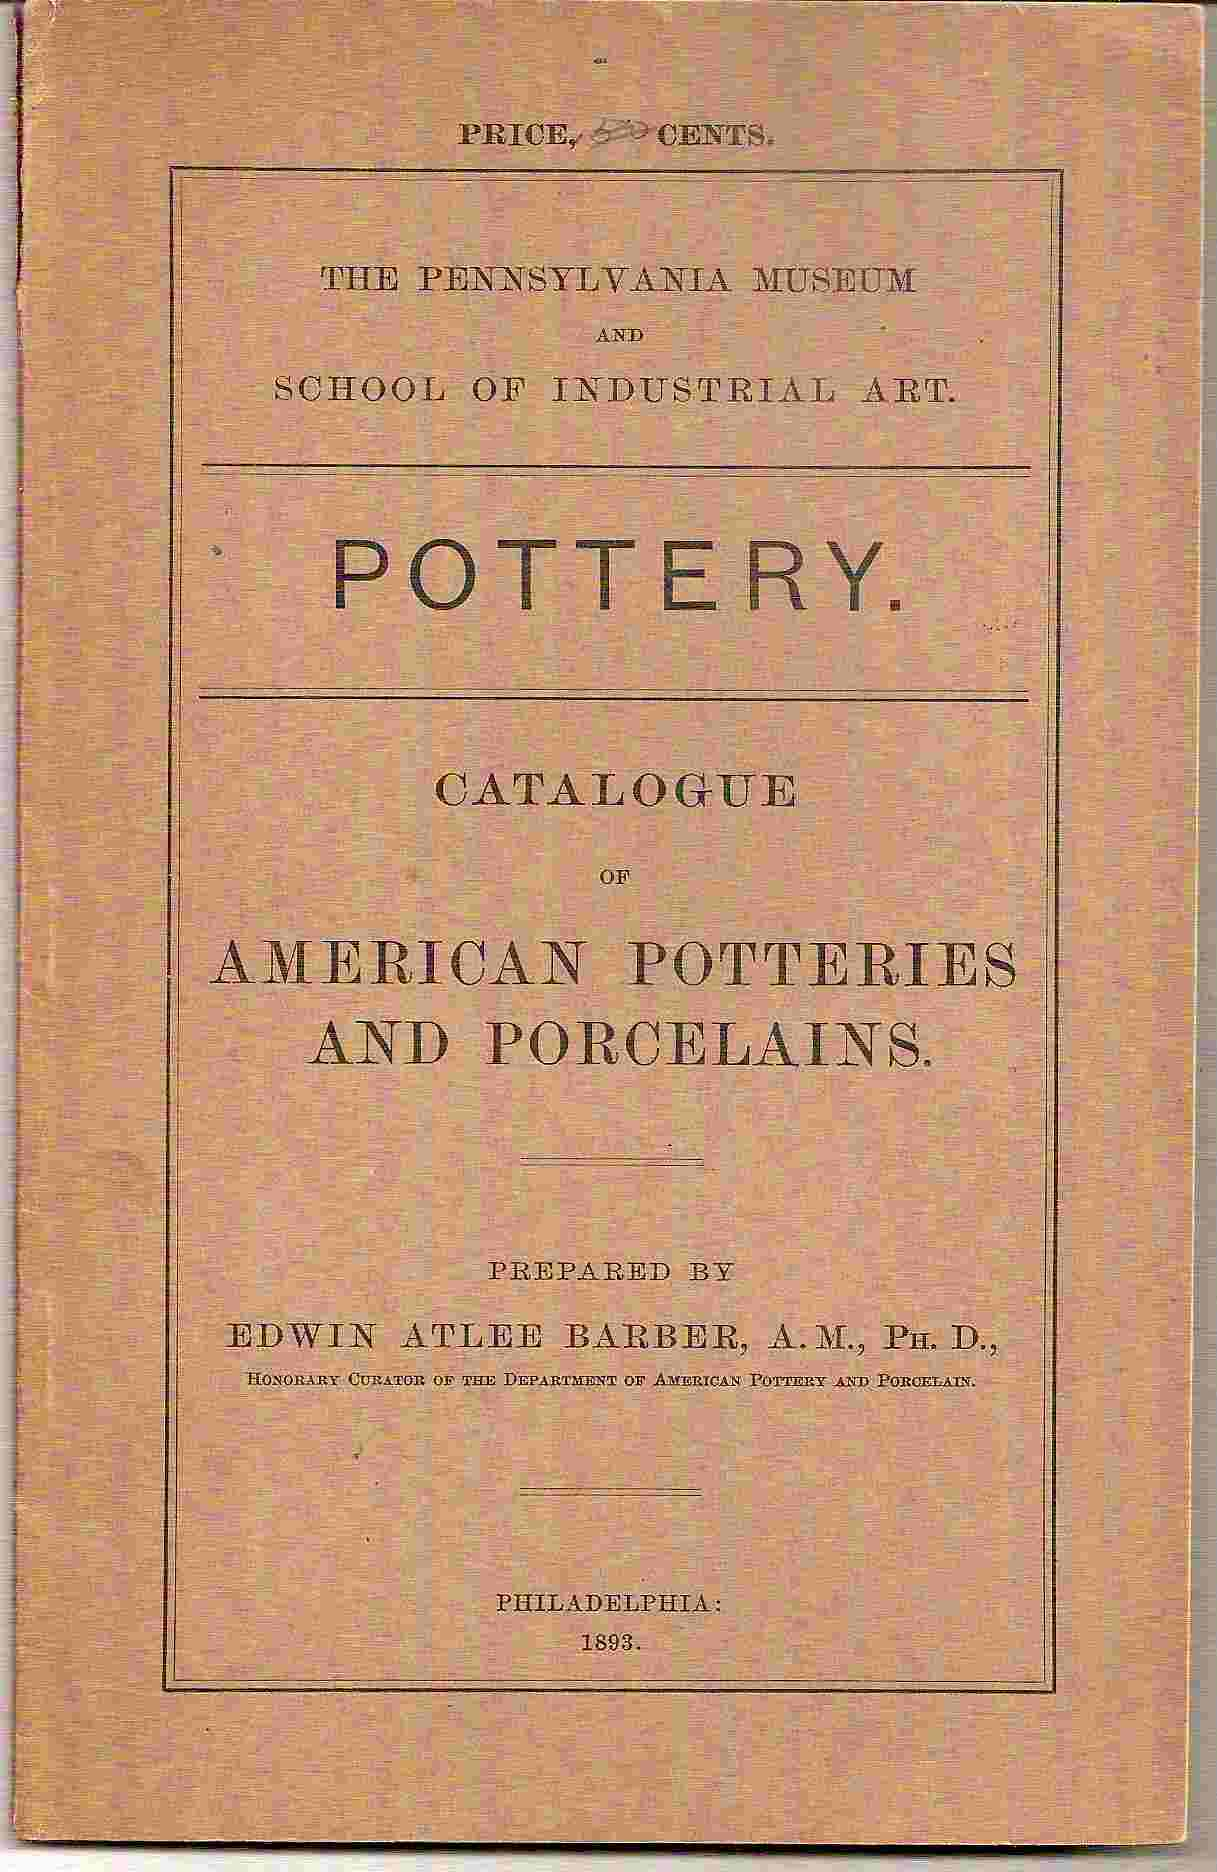 Image for Catalogue of American Potteries and Porcelains; POTTERY